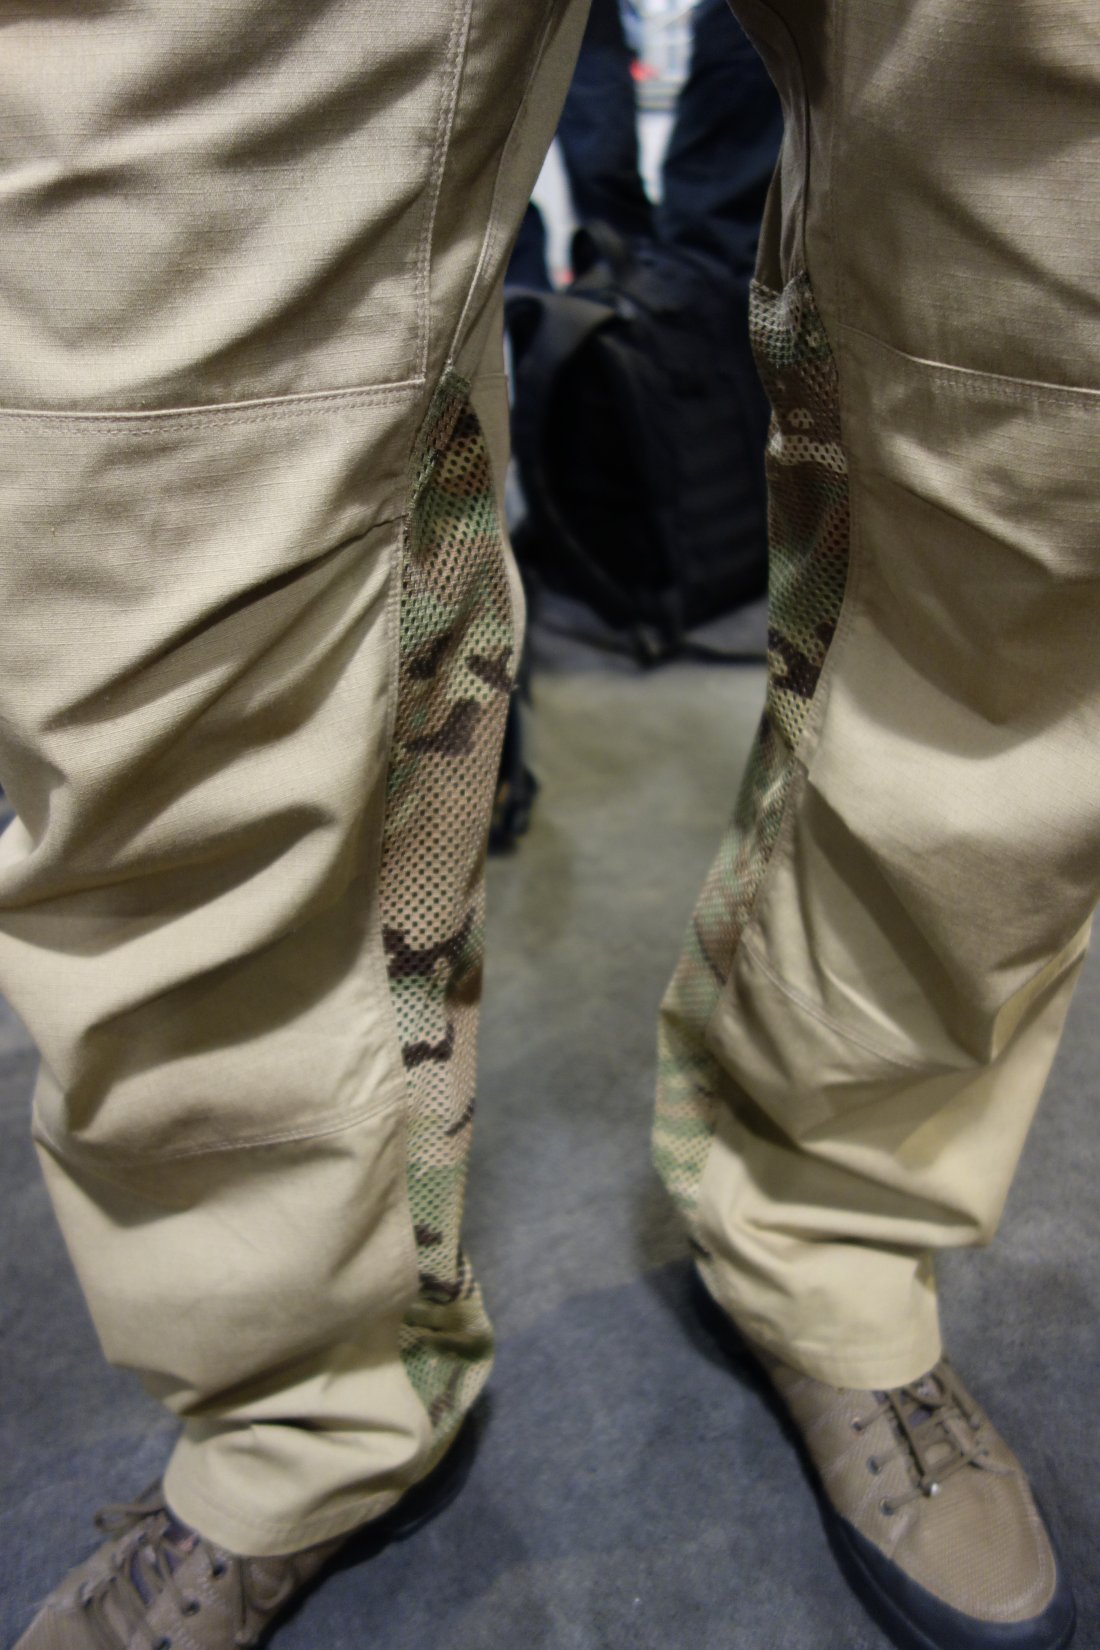 Vertx Airflow Phantom Ops Pant by Fighter Design Combat Tactical Pants with Passive Cooling Technology Evaporative Cooling Adam Slank SHOT Show 2014 David Crane DefenseReview.com DR 3 Vertx Airflow Phantom Ops Pant by Fighter Design: Combat/Tactical Pants with Passive Cooling Mesh Technology (Video!)